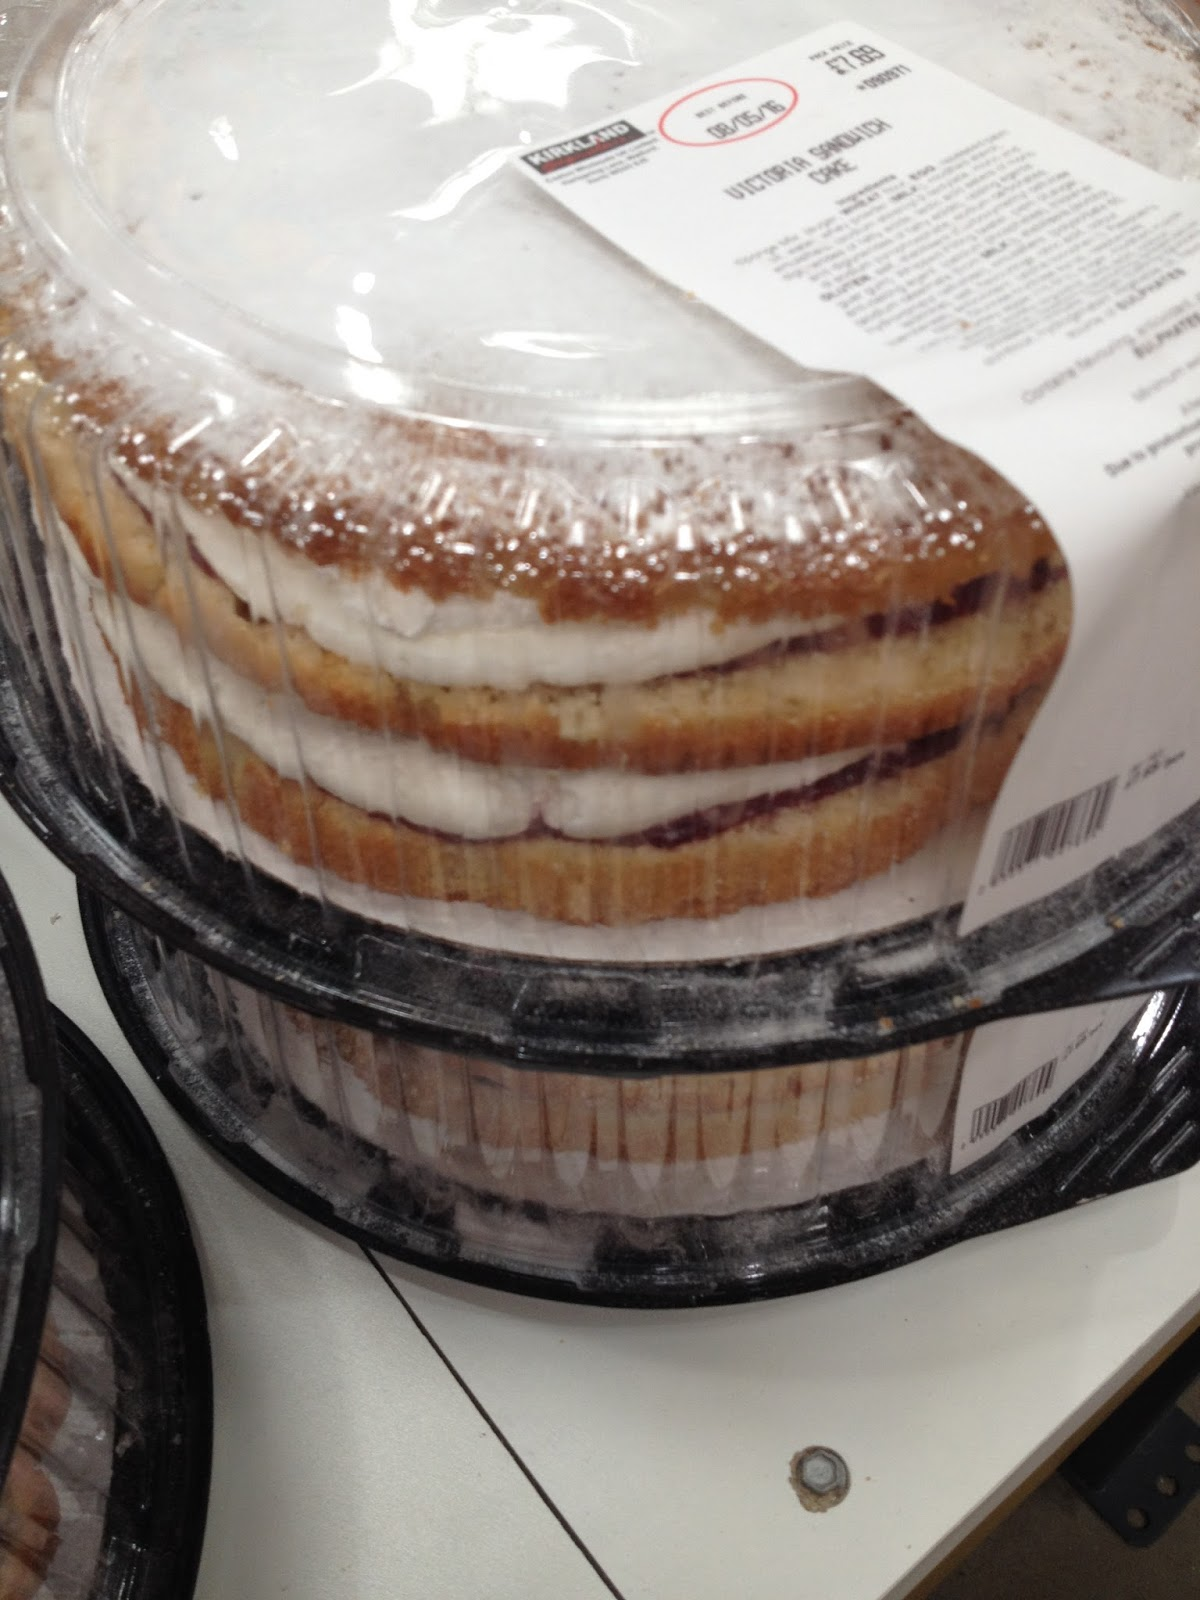 Costco Bakery Cakes Pictures